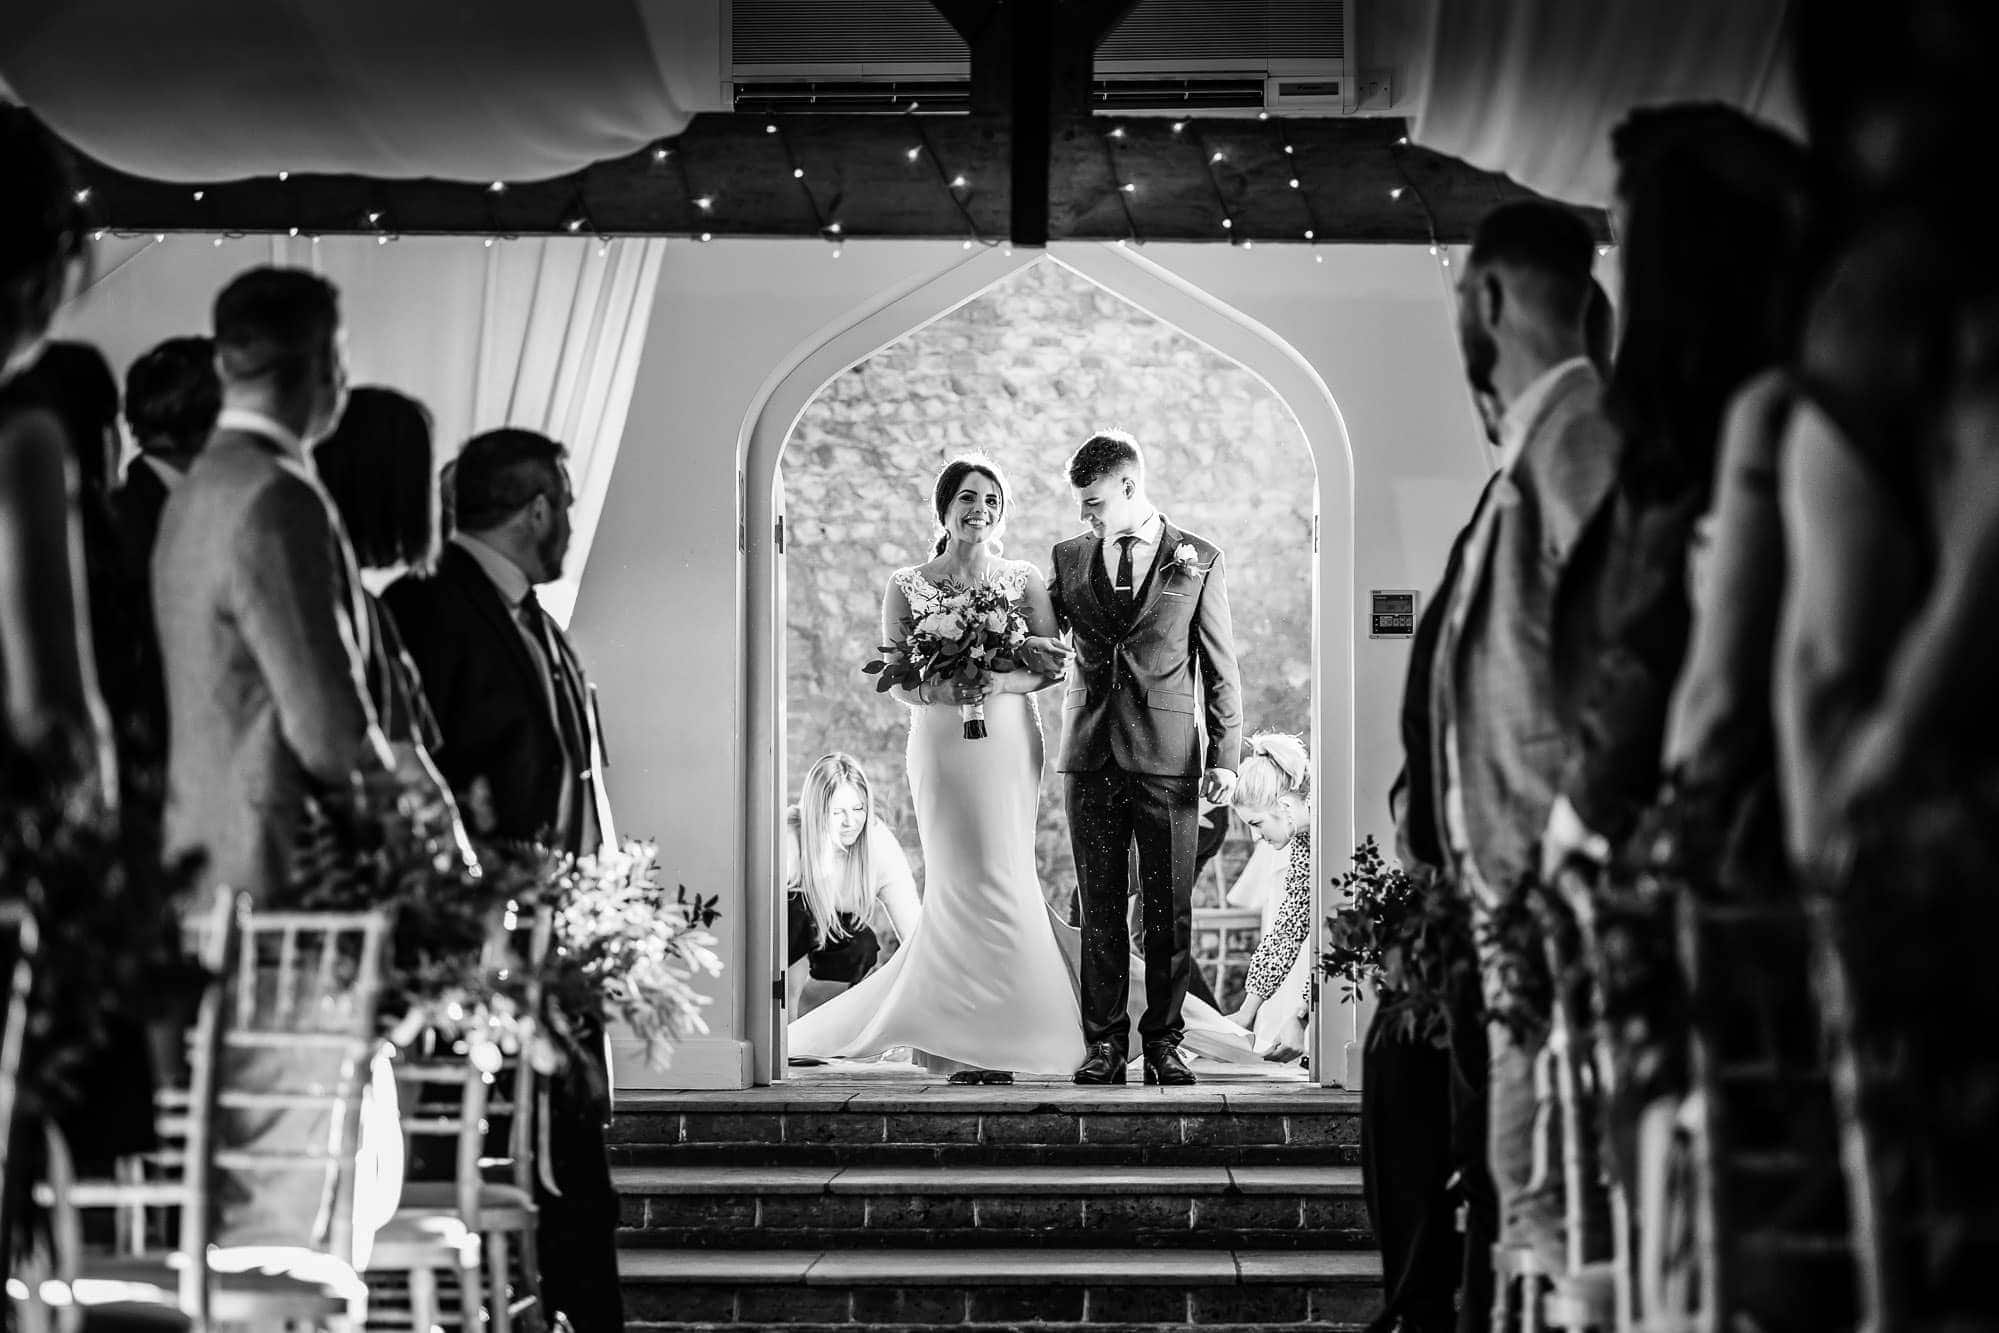 Bride and her Brother waiting to walk down aisle - Farbridge Wedding Ceremony